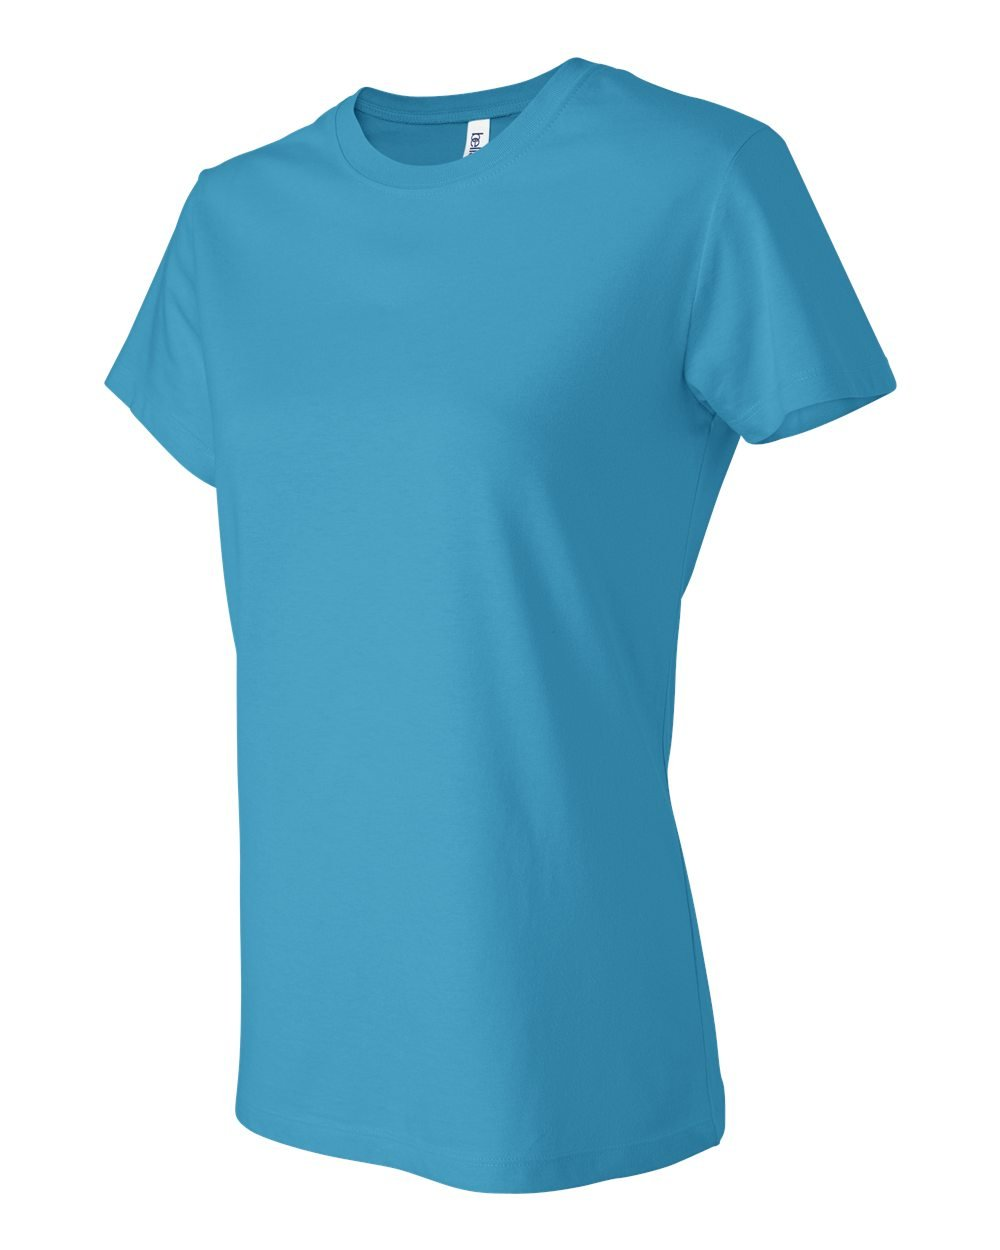 Bella and canvas ladies 39 short sleeve jersey t shirt for Bella shirts screen printing